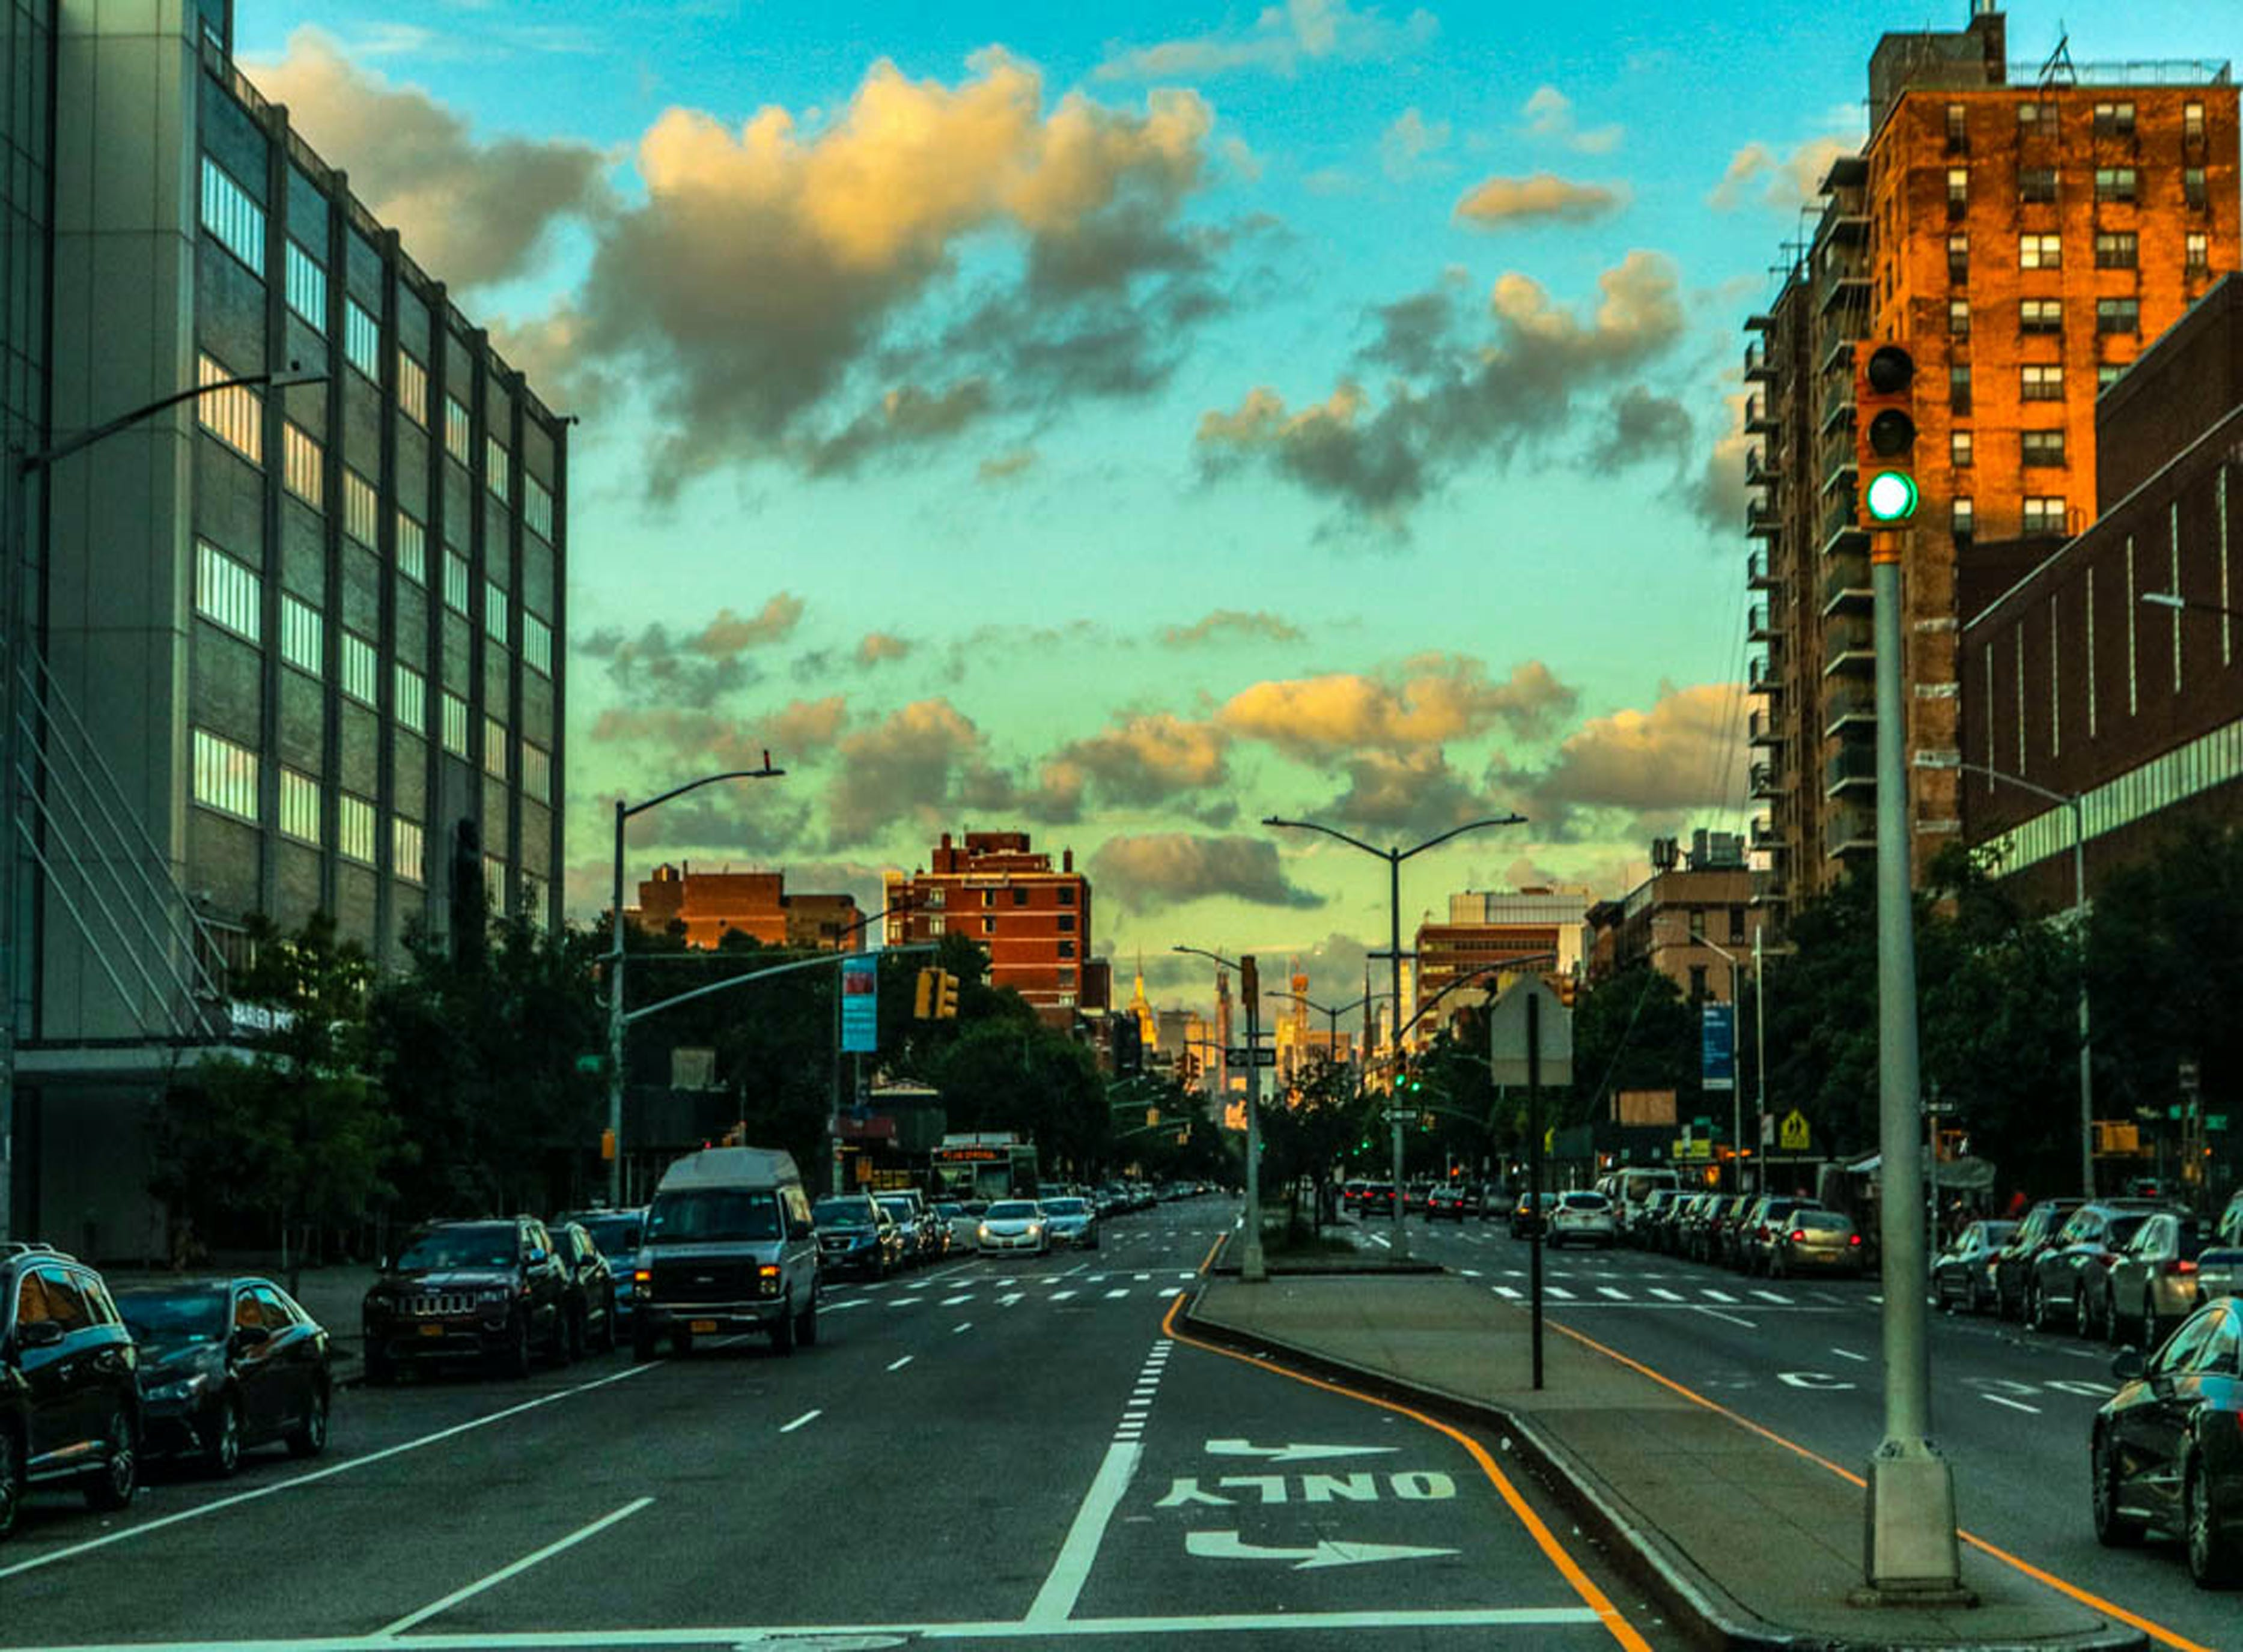 Free stock photo of #Cityscape, #clear skies, #creative, #harlem